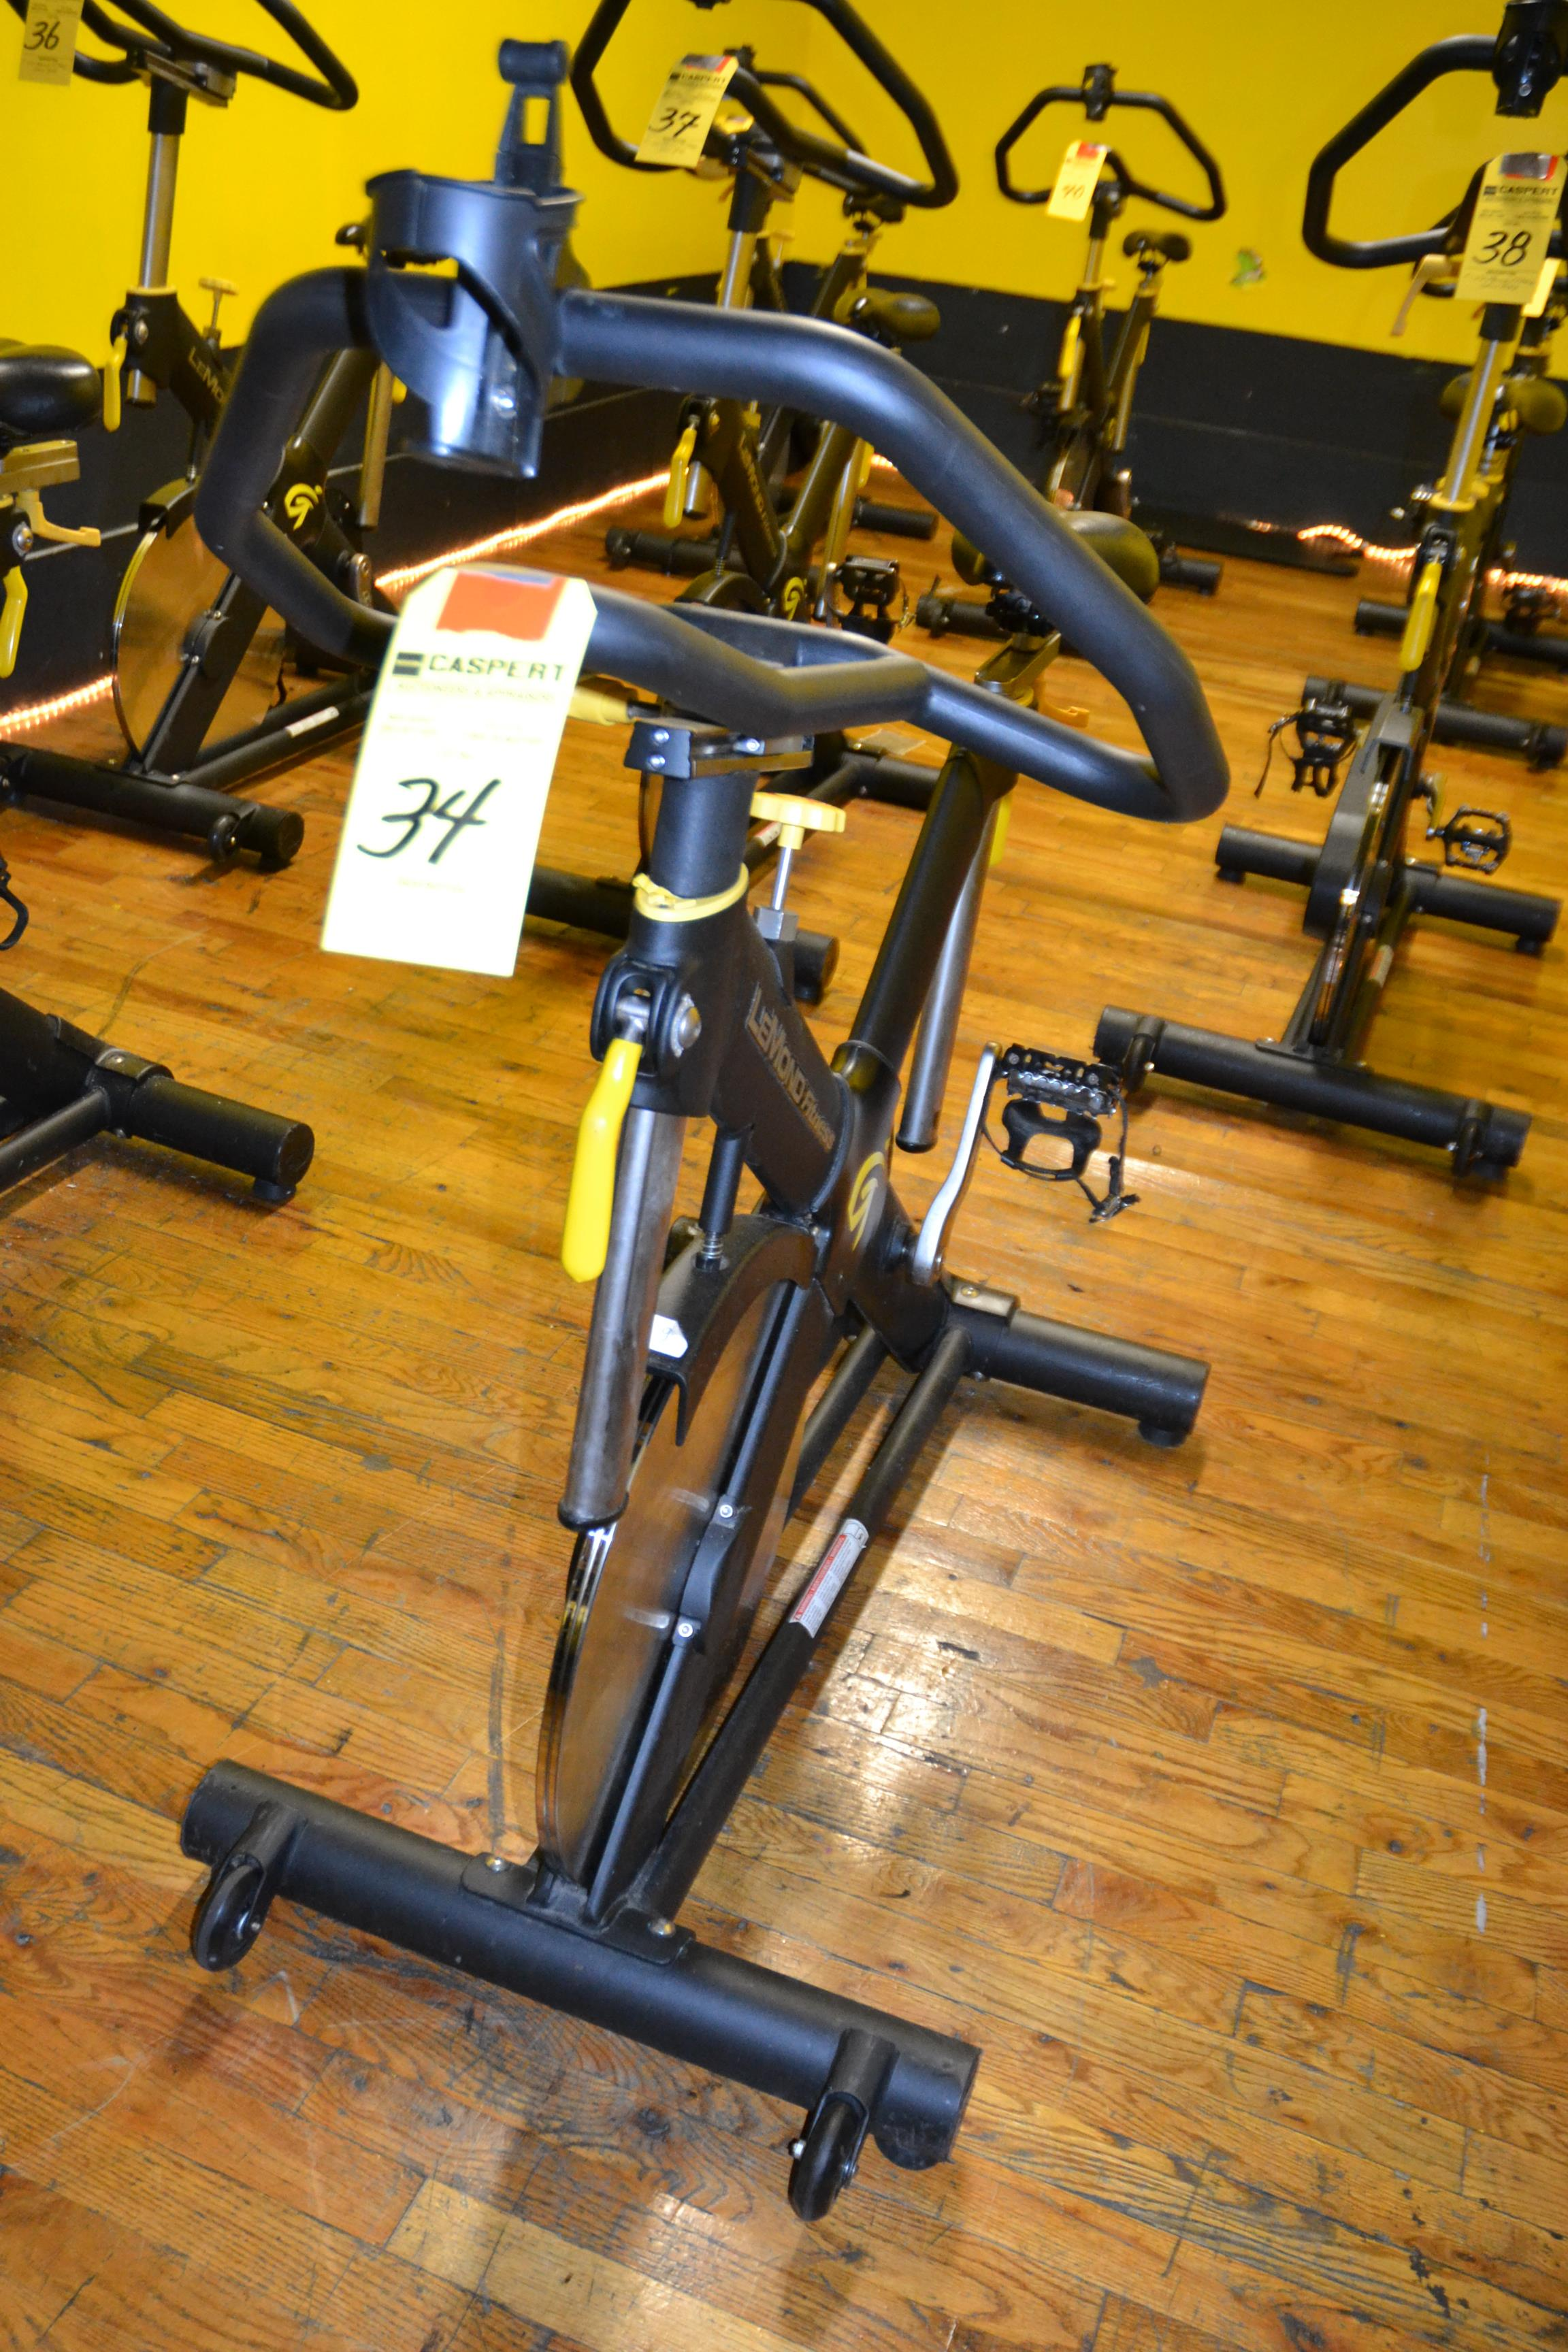 Lot 34 - LEMOND FITNESS 15300-7 SPIN BIKE